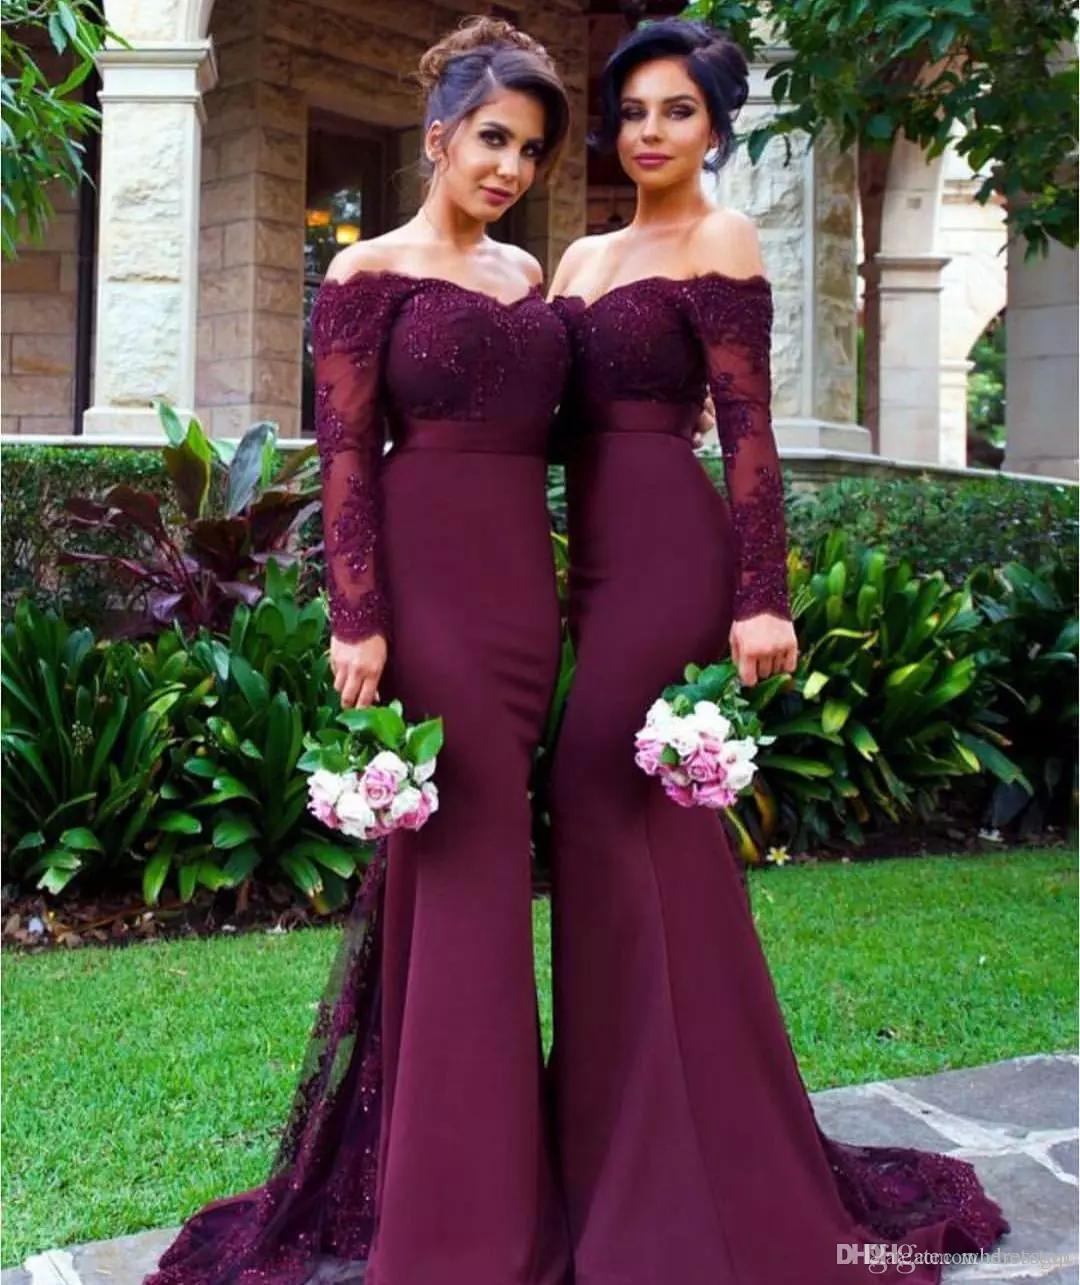 Burgundy off shoulder bridesmaid dresses cheap long beaded burgundy off shoulder bridesmaid dresses cheap long beaded appliqued wedding guest dress floor length sleeves mermaid formal gowns charcoal grey bridesmaid ombrellifo Image collections